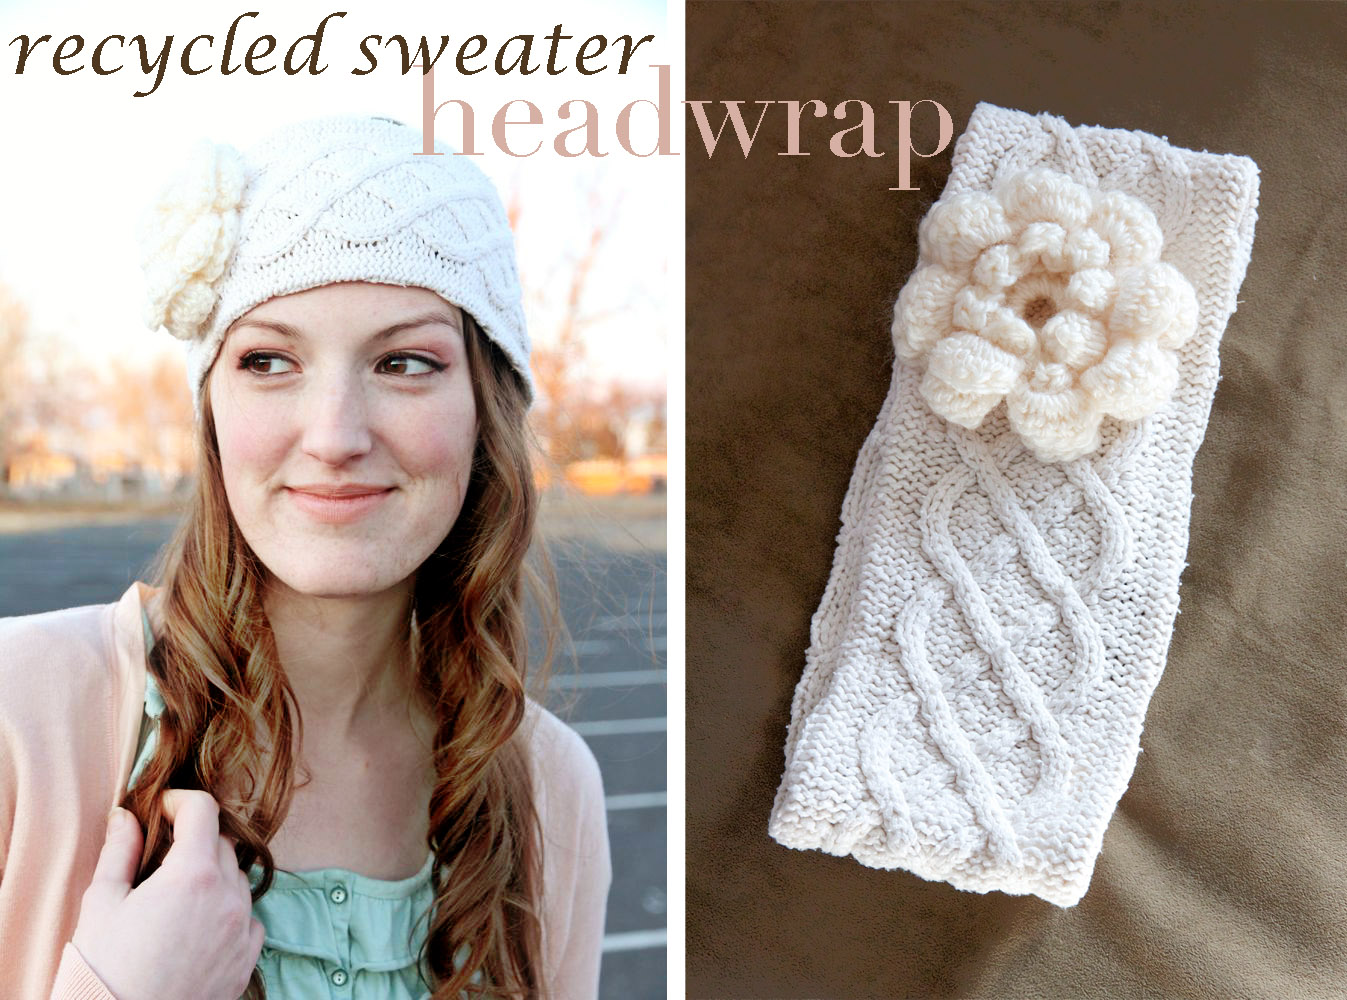 Recycled Sweater Headwrap Tutorial!